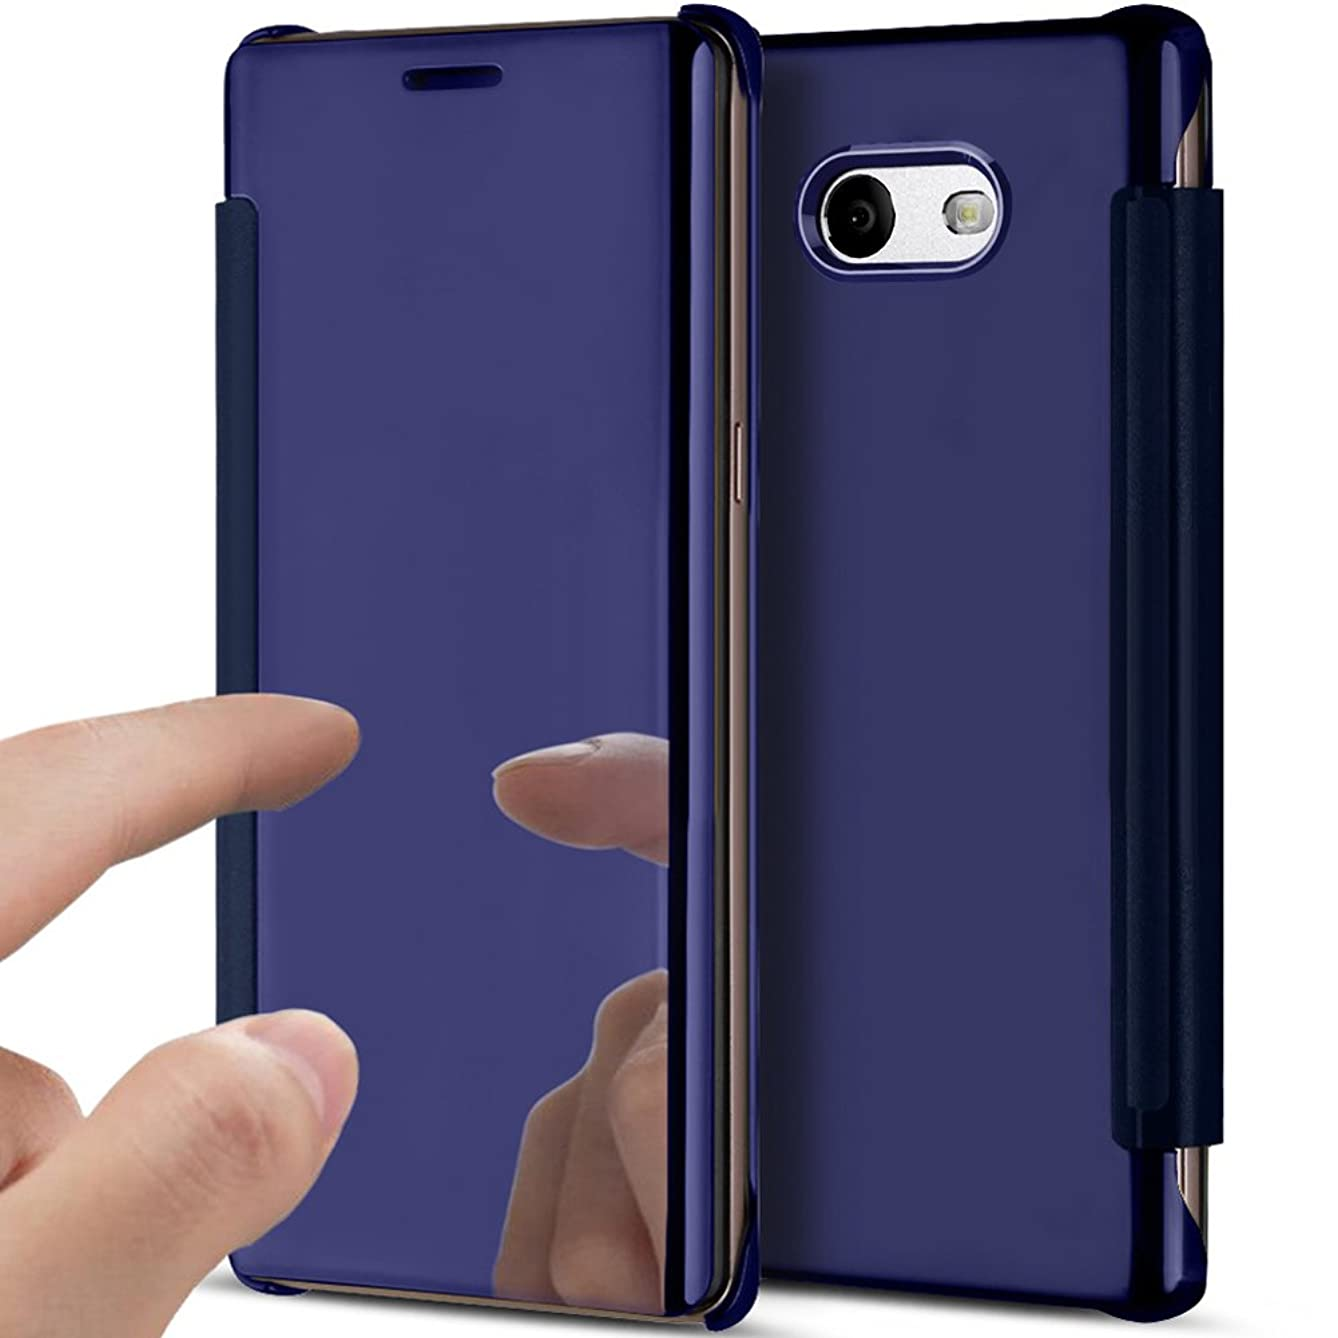 Galaxy J3 Emerge Case,Galaxy J3 Eclipse Case,J3 Mission Case,J3 Prime Case,Galaxy Express Prime 2 Case,ikasus Clear View Plating Mirror Cover Flip Protective Case Cover for Galaxy J3 (2017),Dark Blue